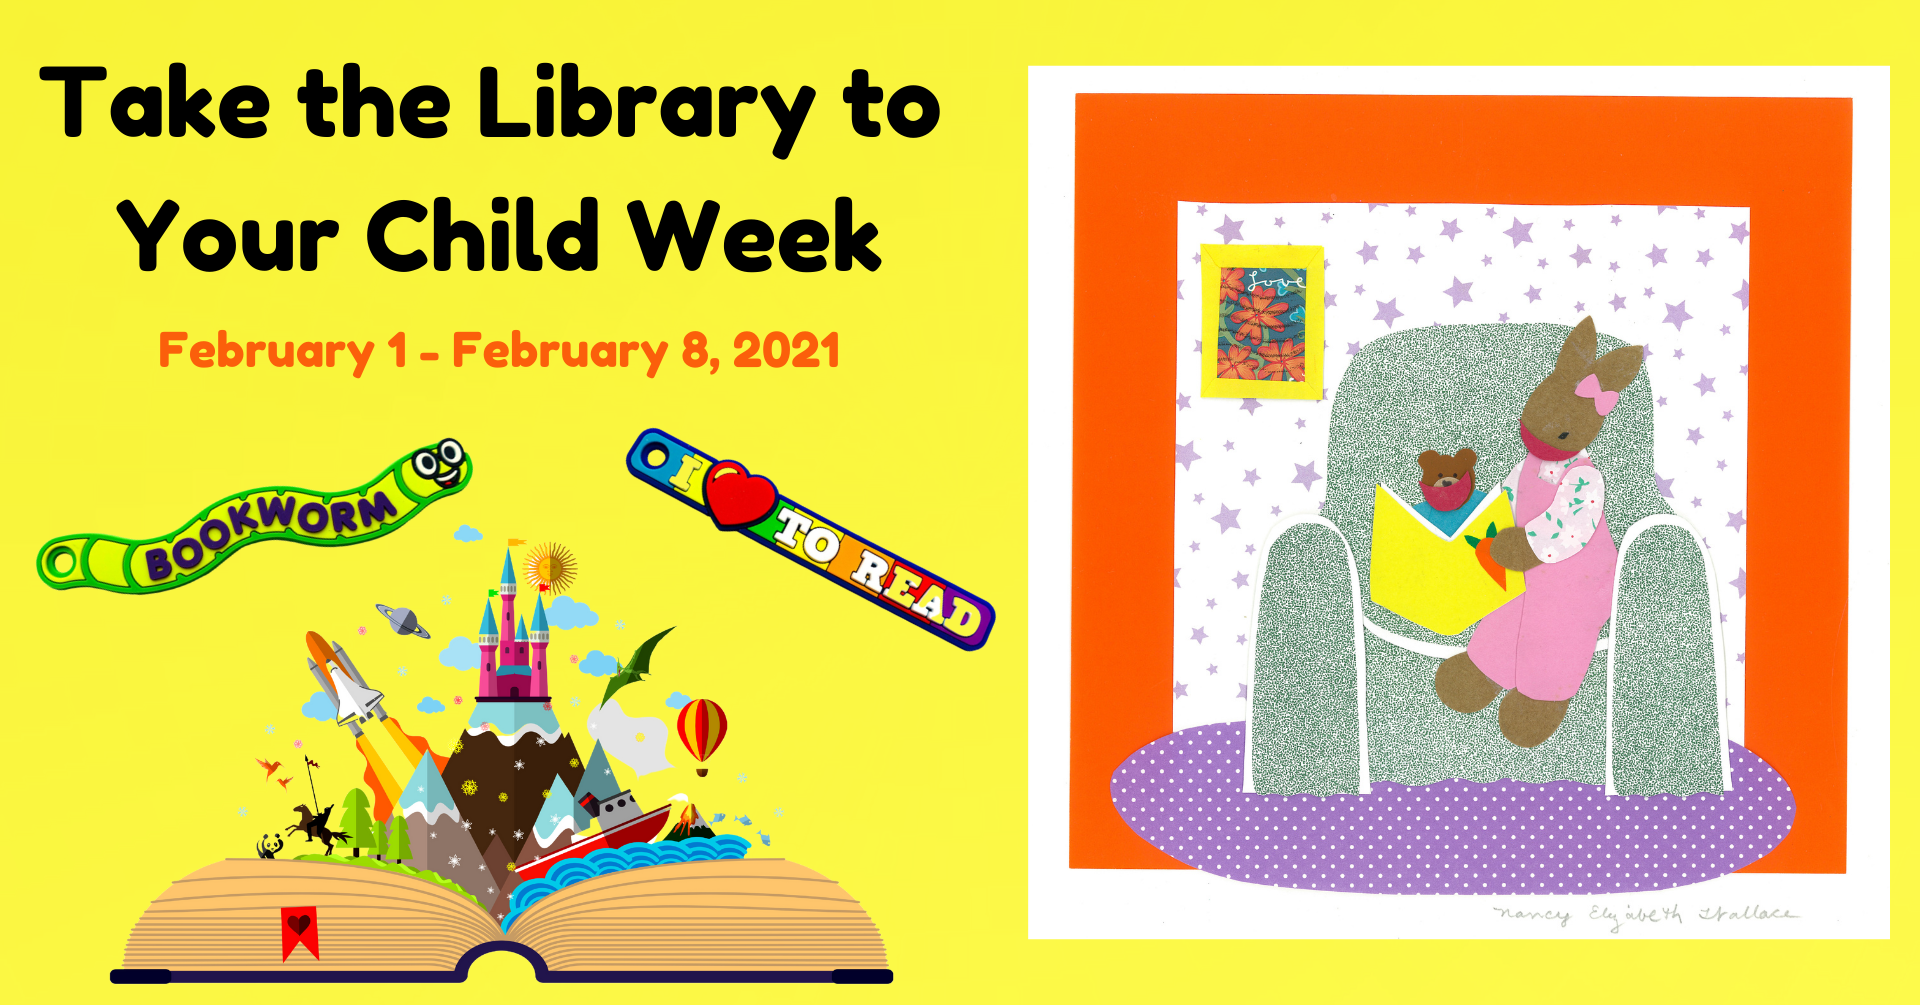 Take the Library to Your Child Week